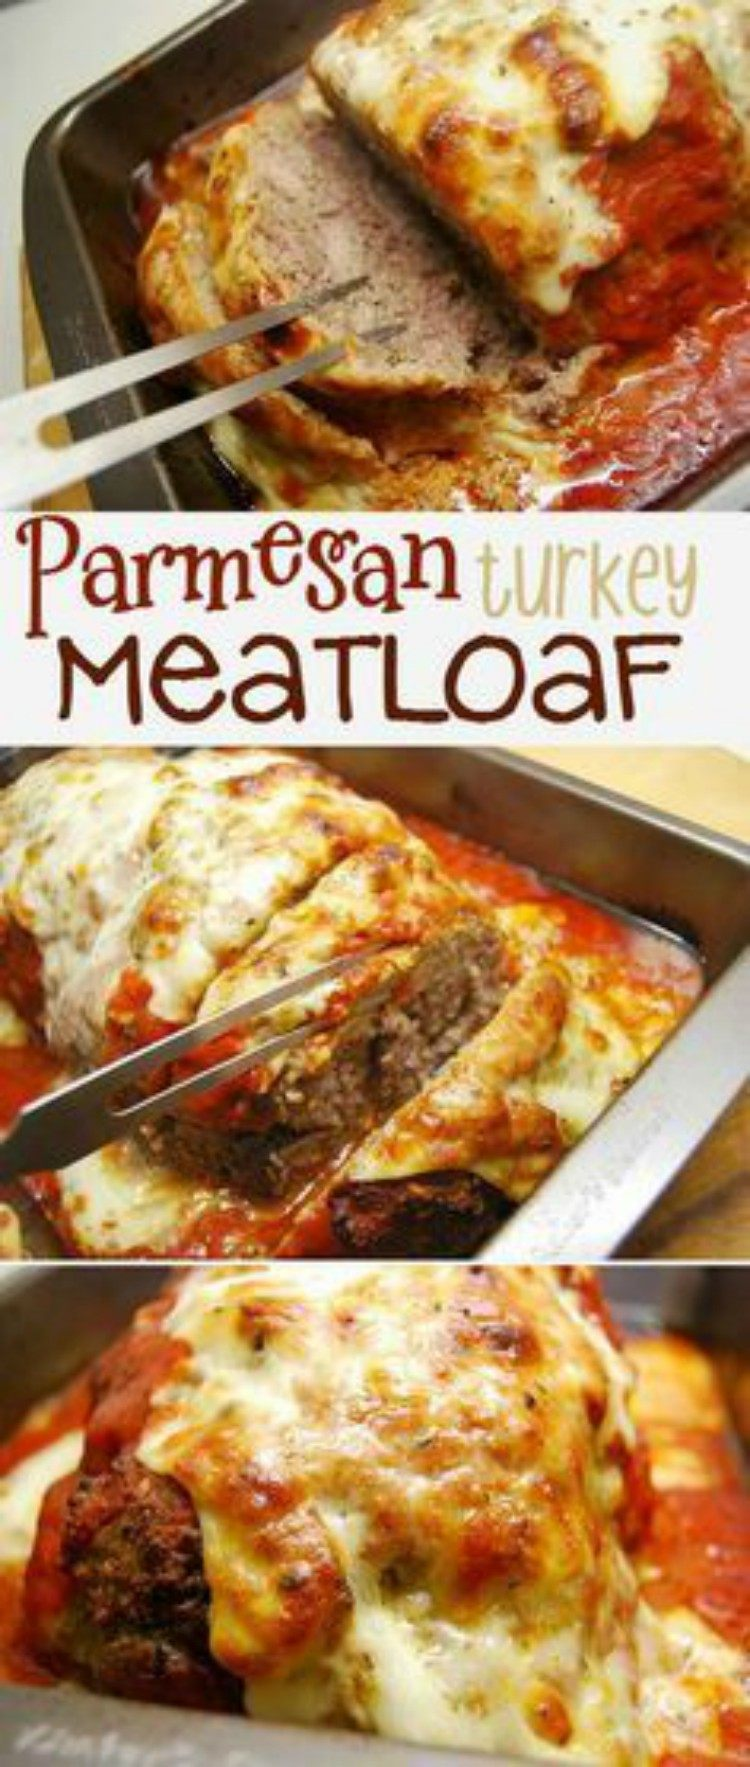 Parmesan crusted meatloaf.